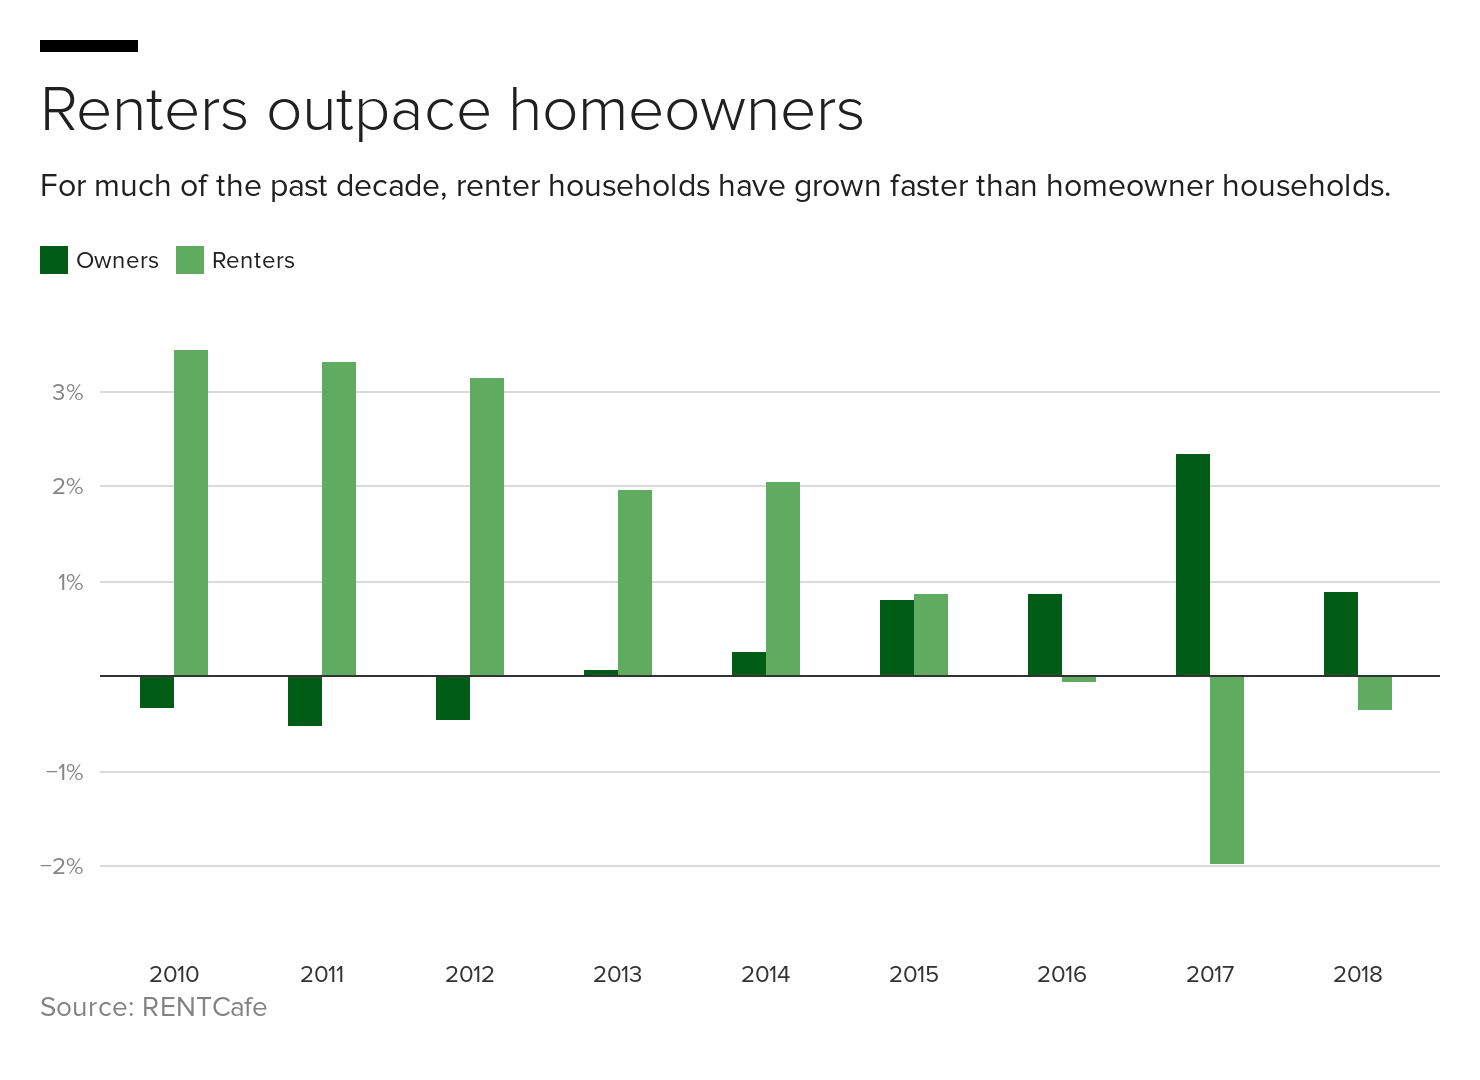 1bf1d-renters-outpace-homeowners.png